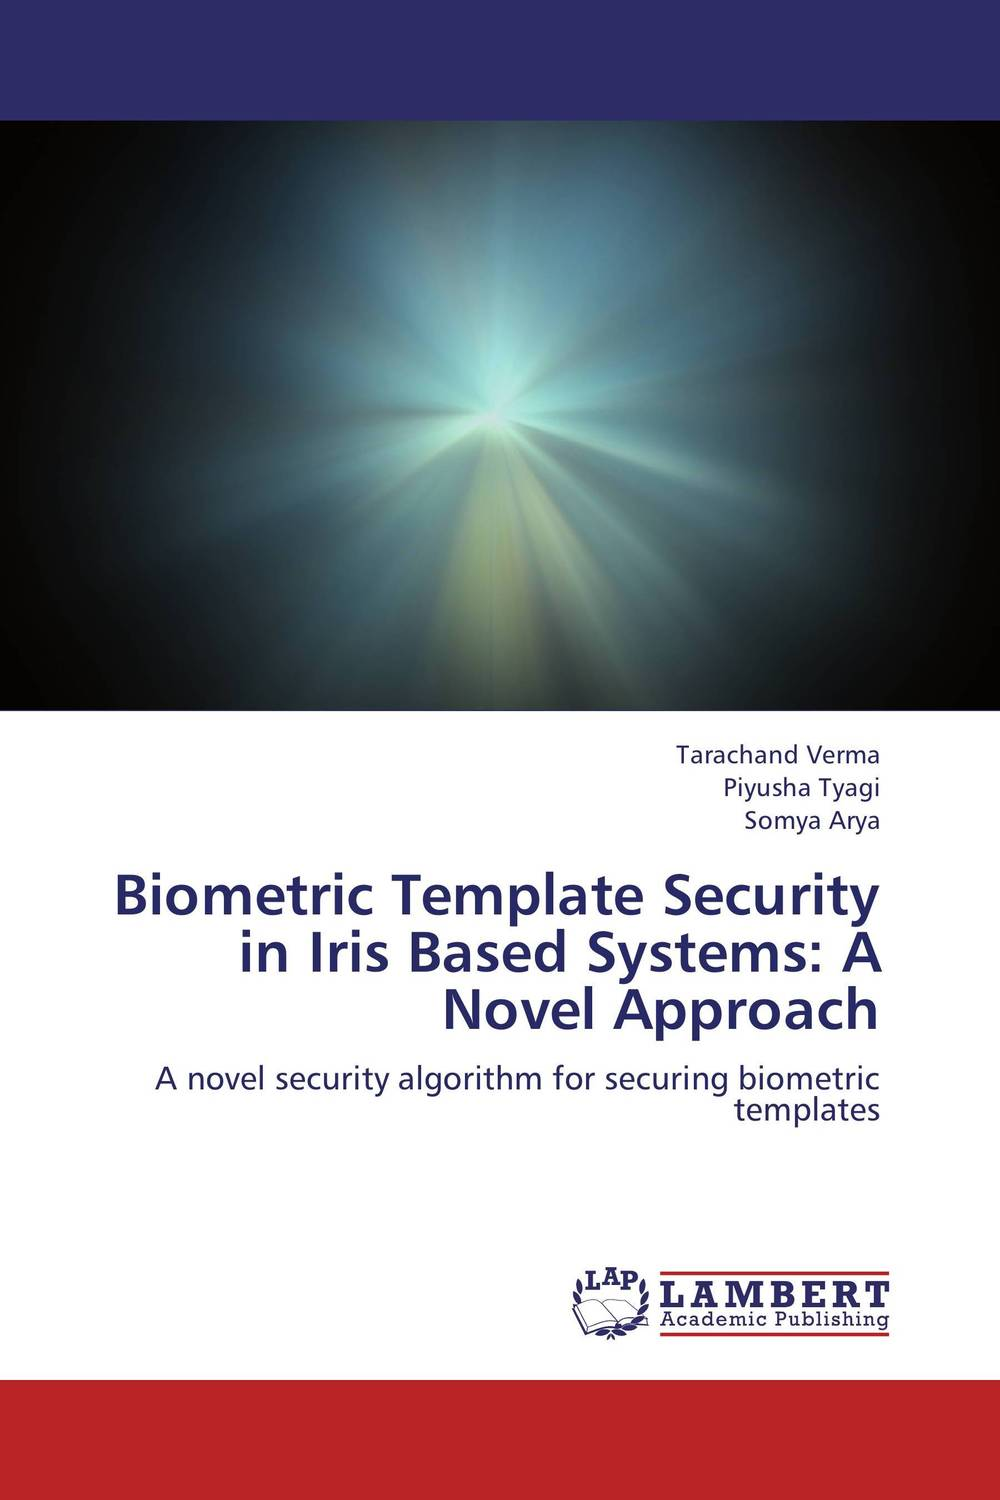 Biometric Template Security in Iris Based Systems: A Novel Approach peter stone layered learning in multiagent systems – a winning approach to robotic soccer